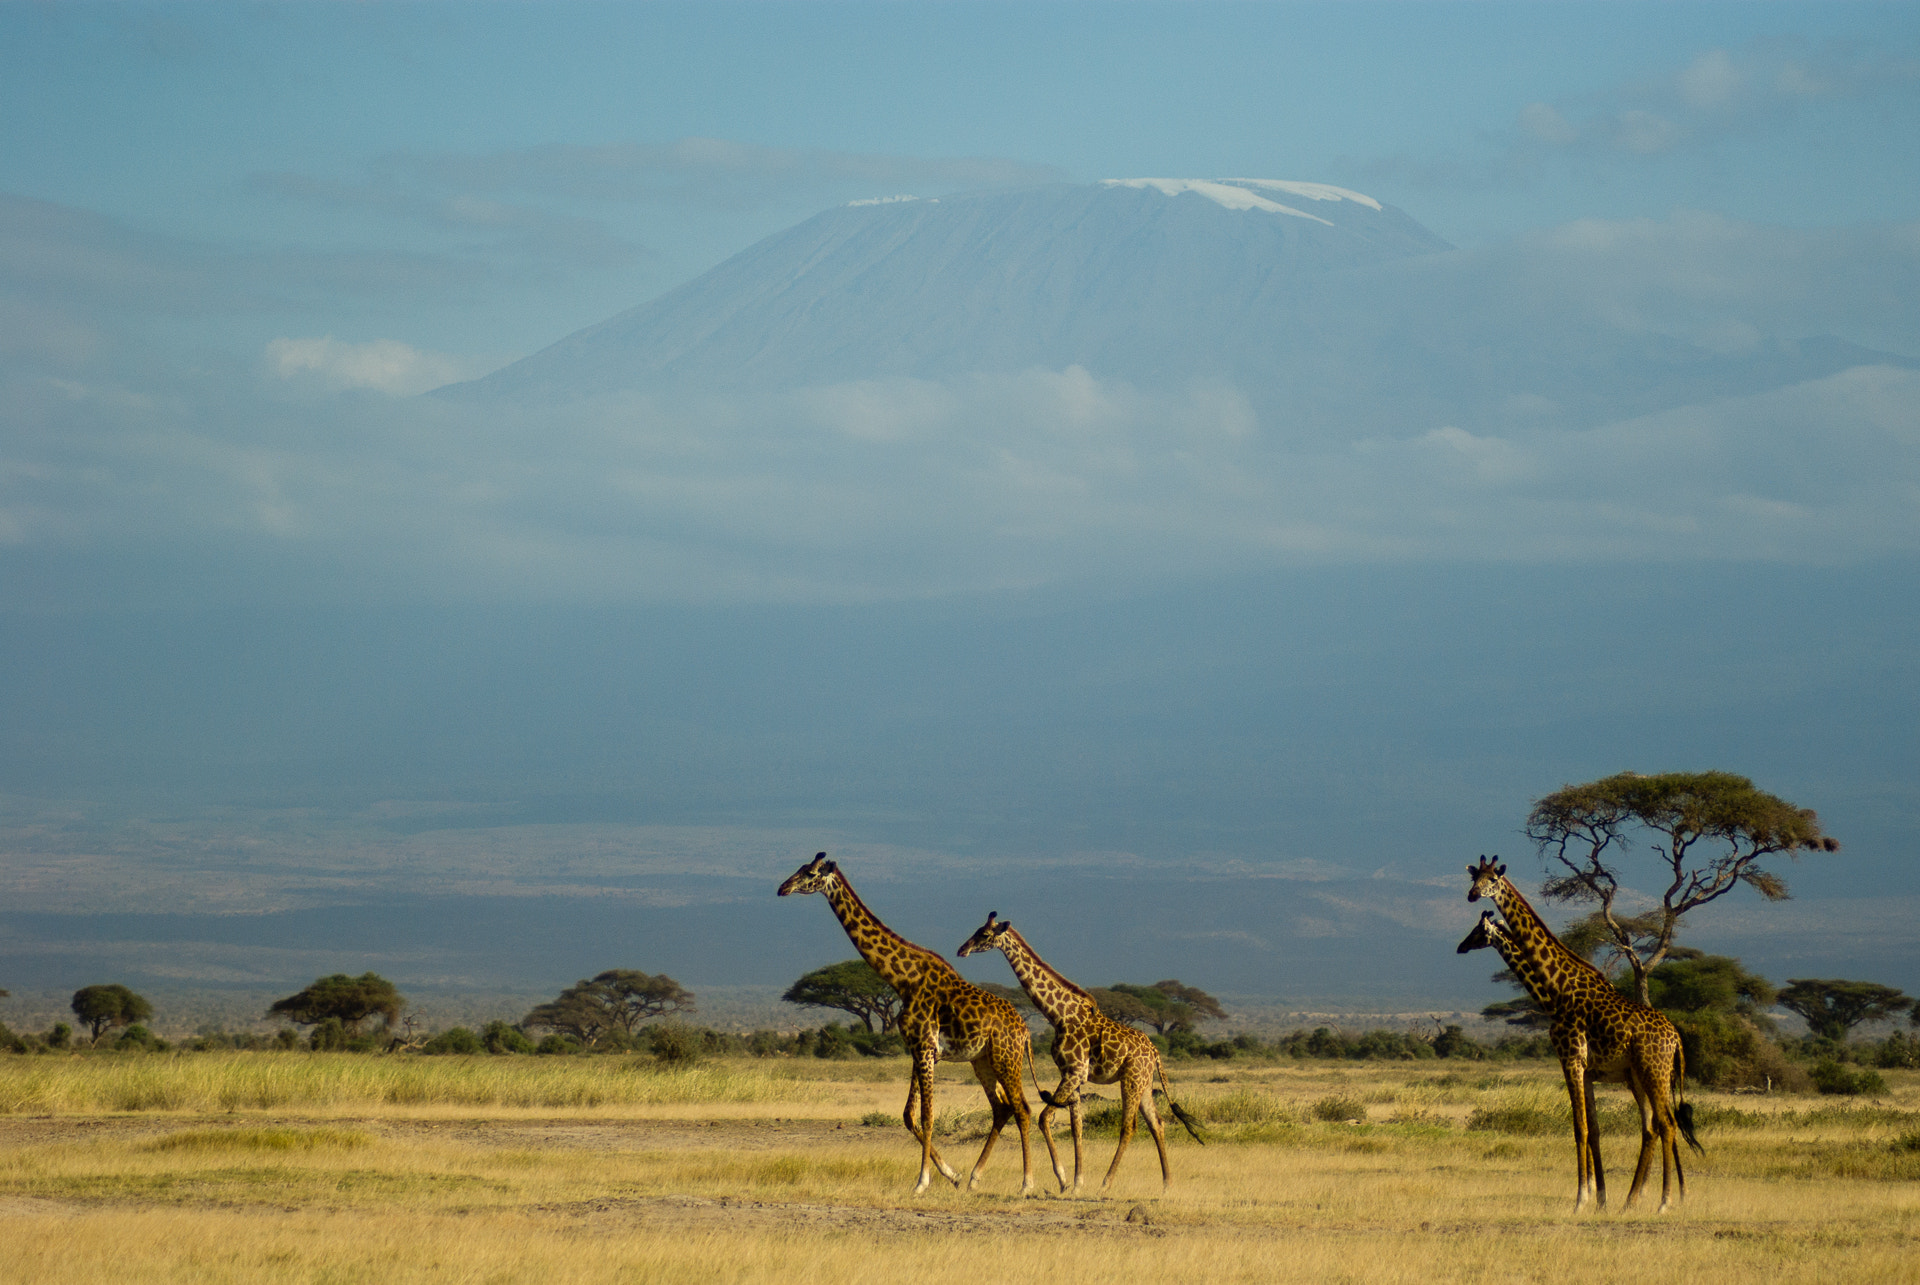 Giraffes_And_Kilimanjaro_(35248776)